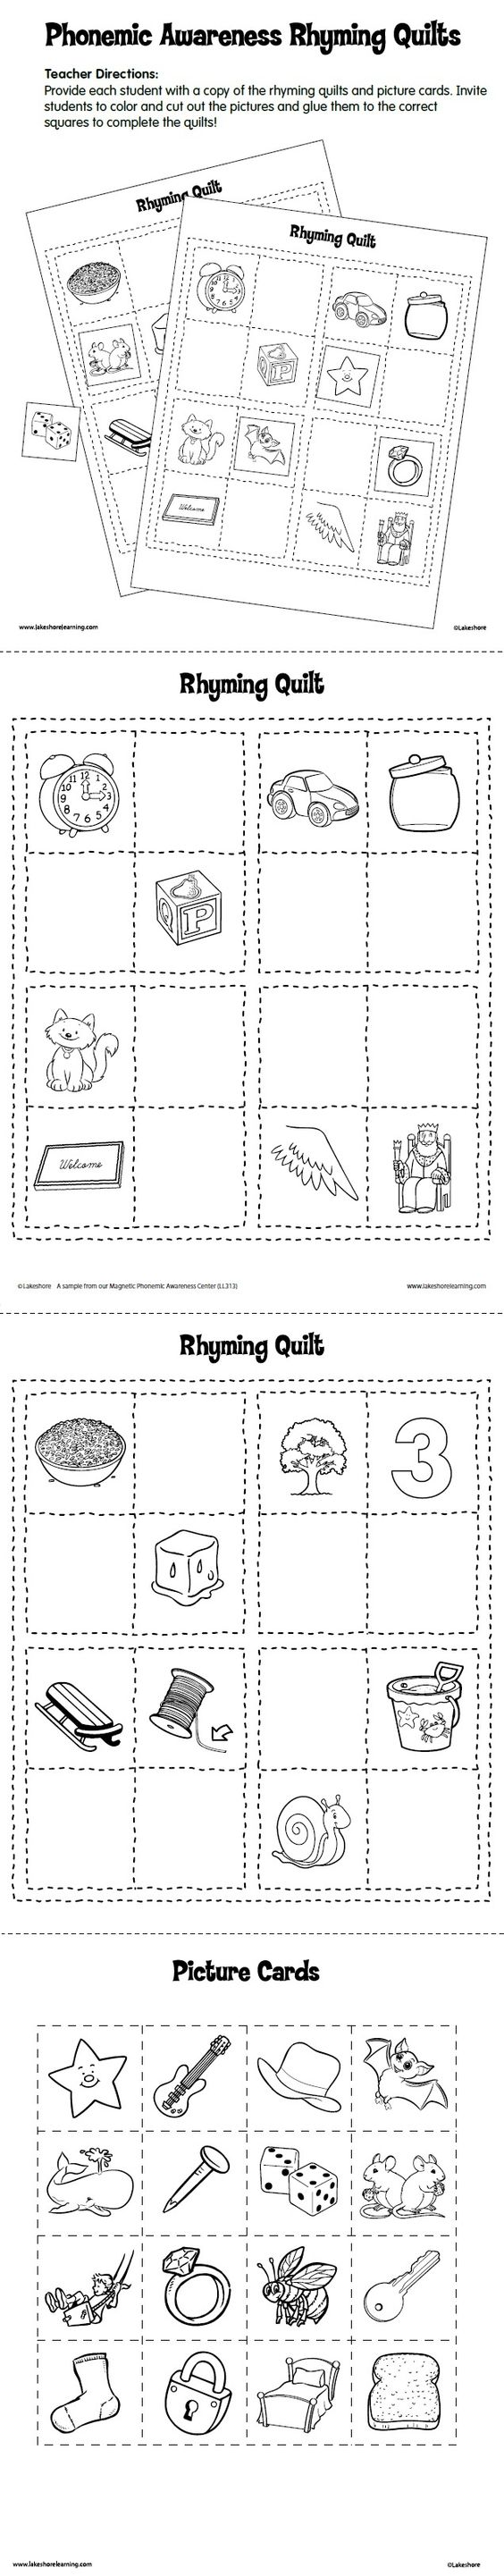 Worksheet Rhyming Words Kindergarten pin by ashley woodward on teacher ideas pinterest words and this activity directly relates recognize produce rhyming children can learn about in a fun different way